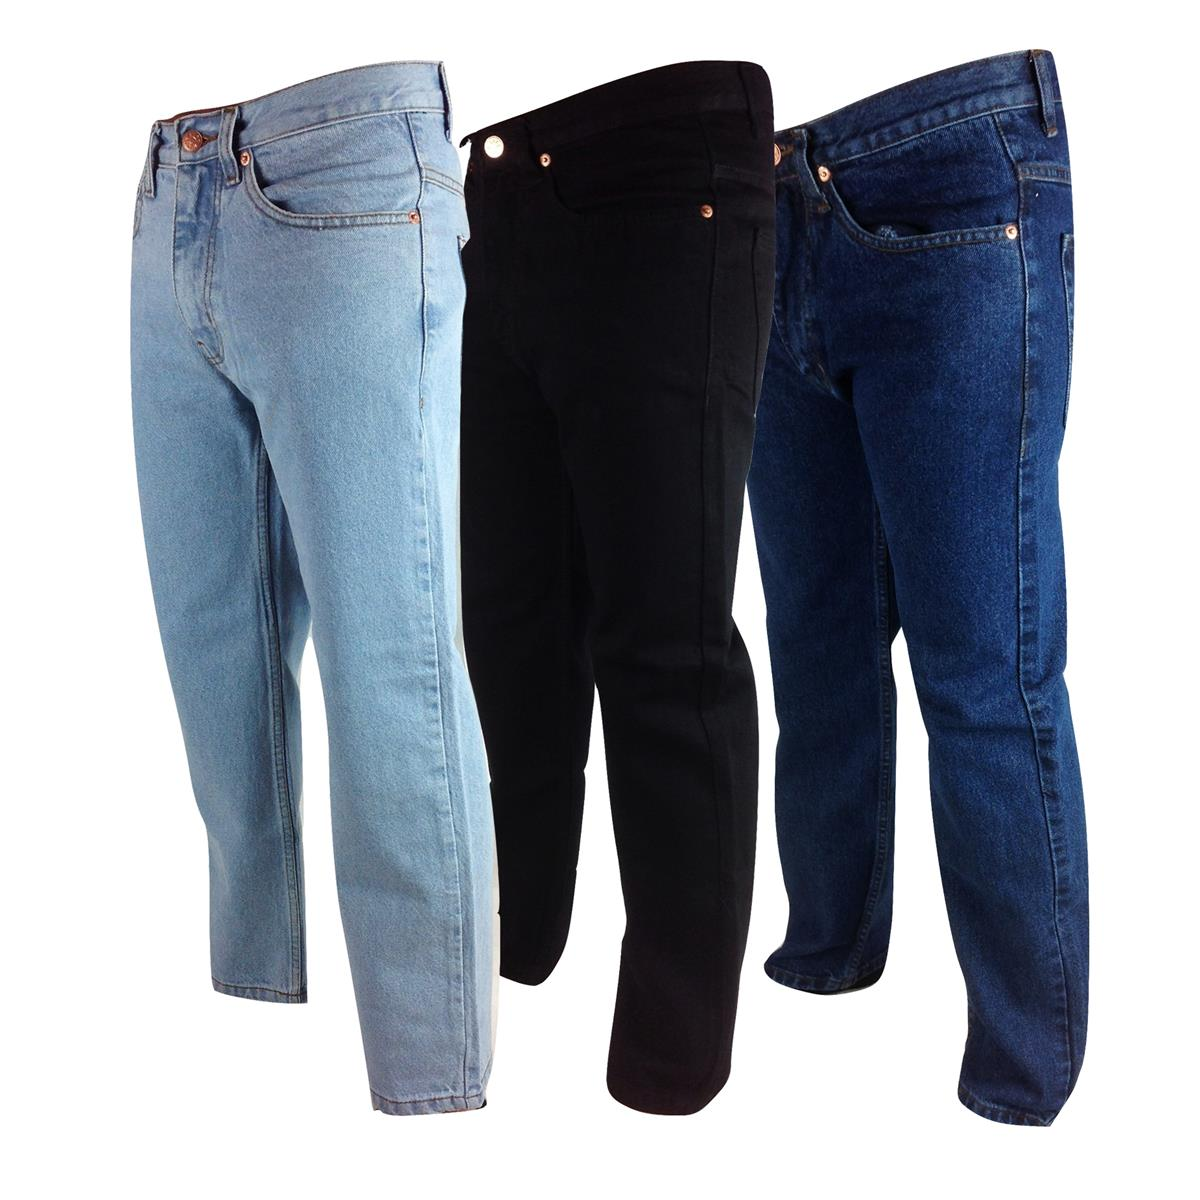 2baa2a65b942c Mens Regular Fit Euro Denim Jeans 30-50 Comfort Straight Leg Plain ...